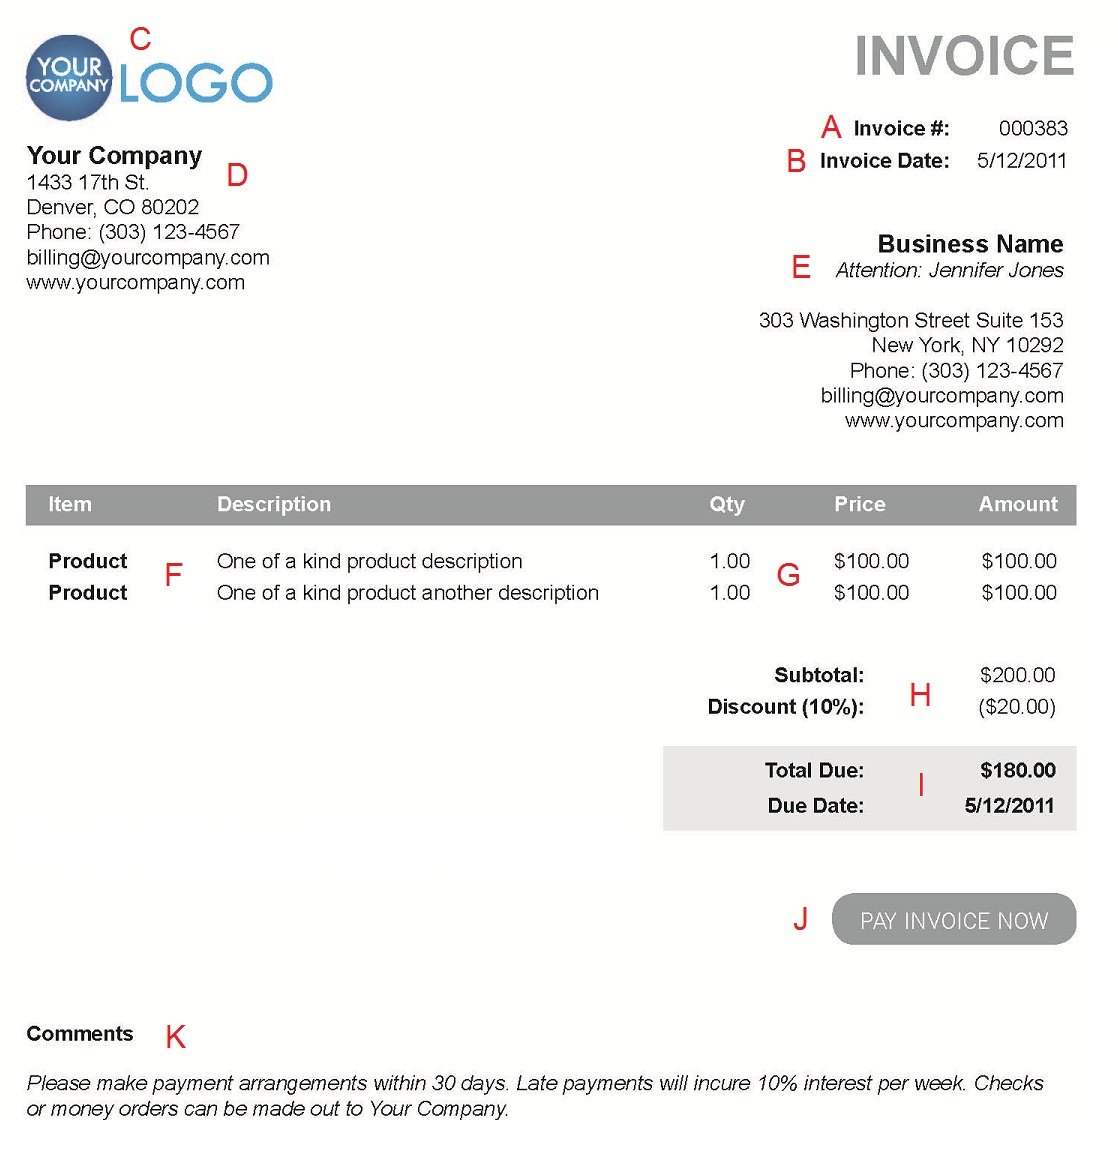 Poorboyzjeepclubus  Mesmerizing The  Different Sections Of An Electronic Payment Invoice With Luxury A  With Adorable Free Inventory And Invoice Software Also Tax Invoice Format In Addition Commercial Invoice Forms And Download Express Invoice As Well As Free Software For Invoices Additionally Invoice Template For Services Provided From Paysimplecom With Poorboyzjeepclubus  Luxury The  Different Sections Of An Electronic Payment Invoice With Adorable A  And Mesmerizing Free Inventory And Invoice Software Also Tax Invoice Format In Addition Commercial Invoice Forms From Paysimplecom